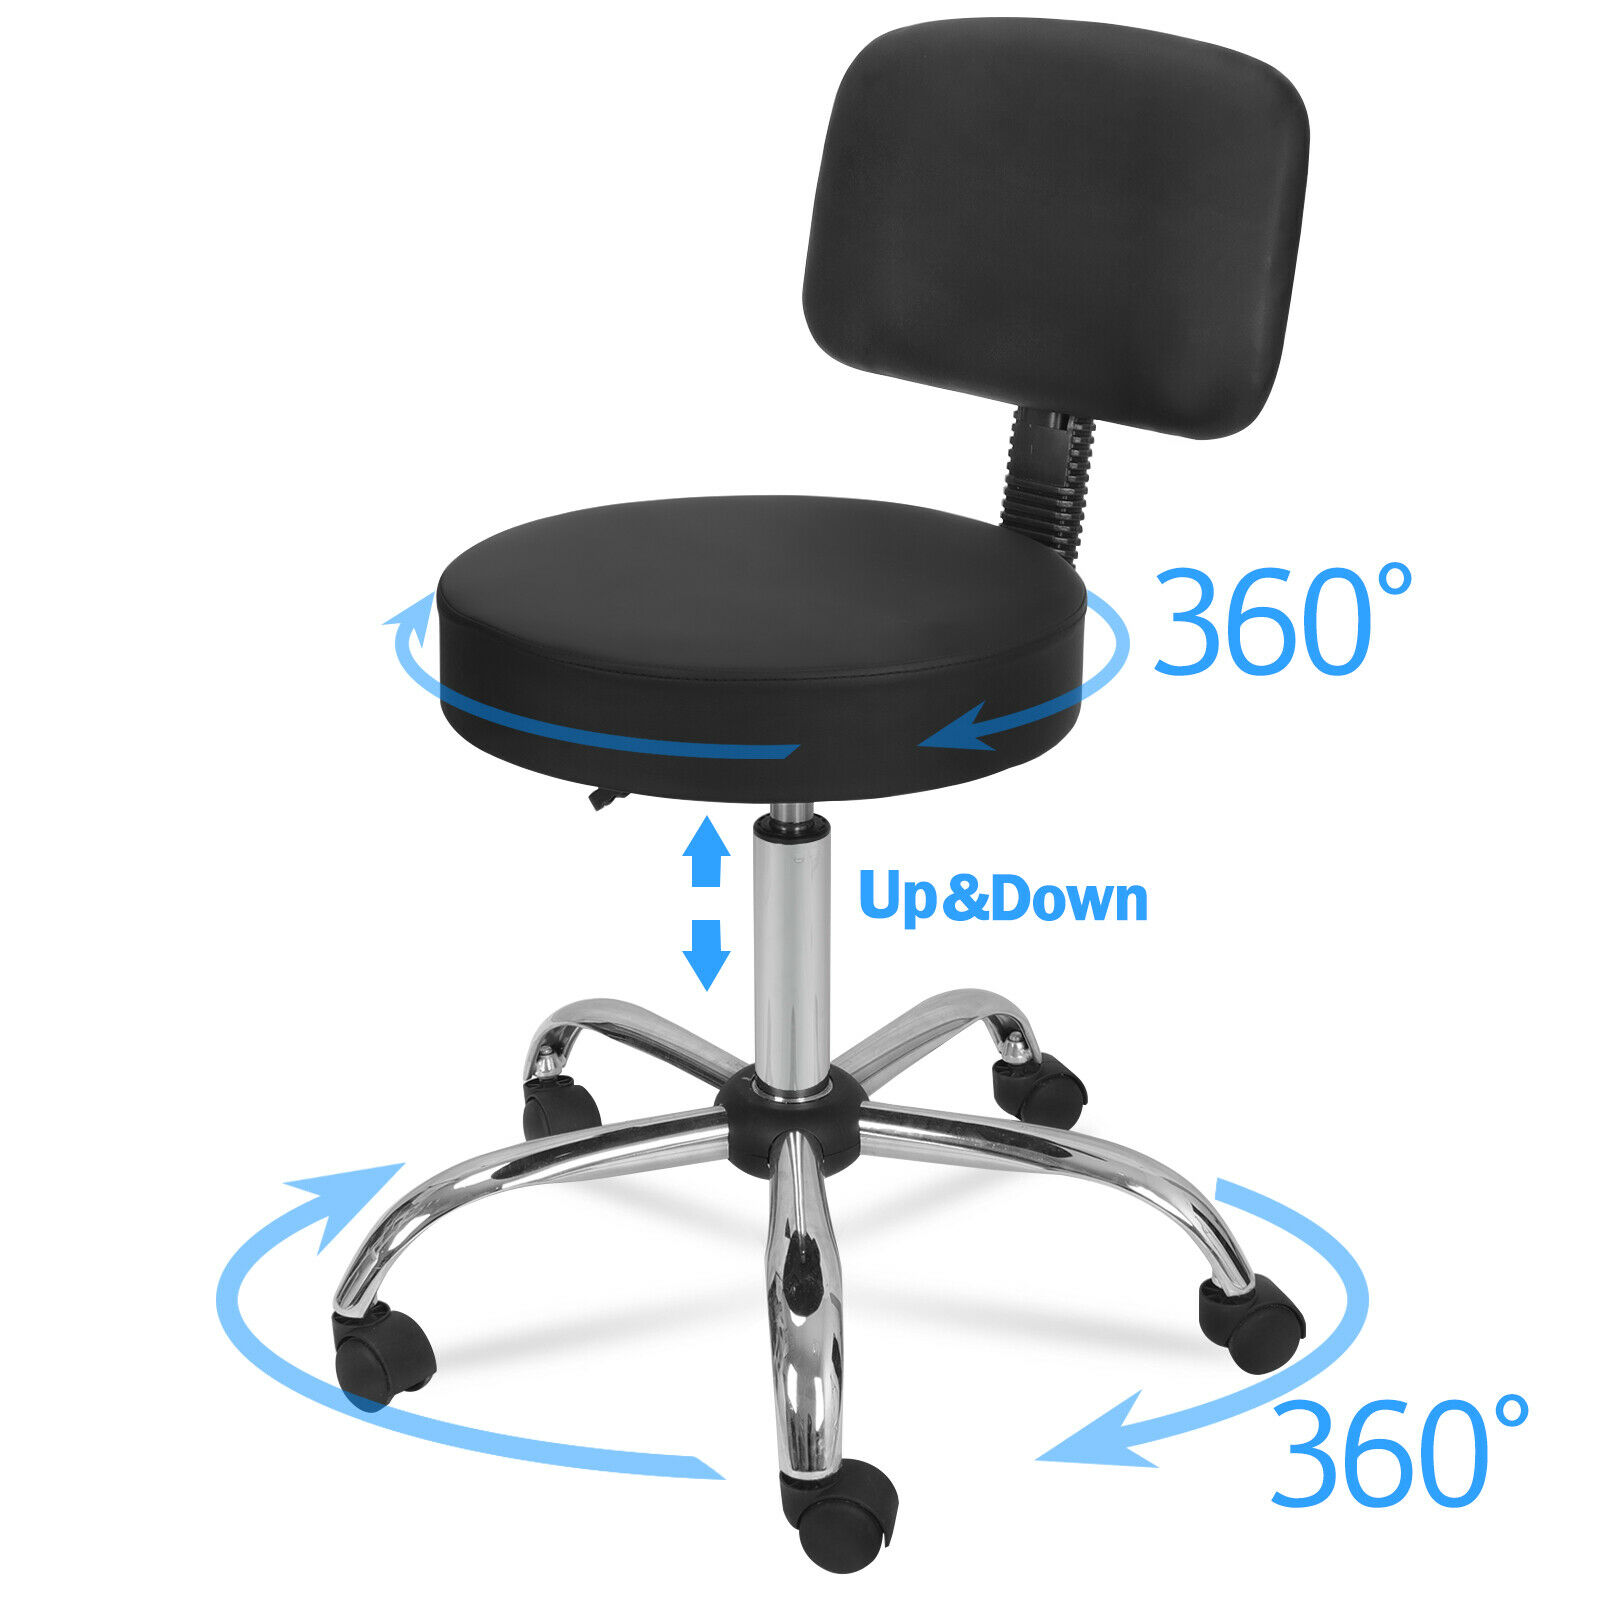 Rolling Bar Stool Adjustable Hydraulic Massage Spa Salon Chair With Back Rest Health & Beauty